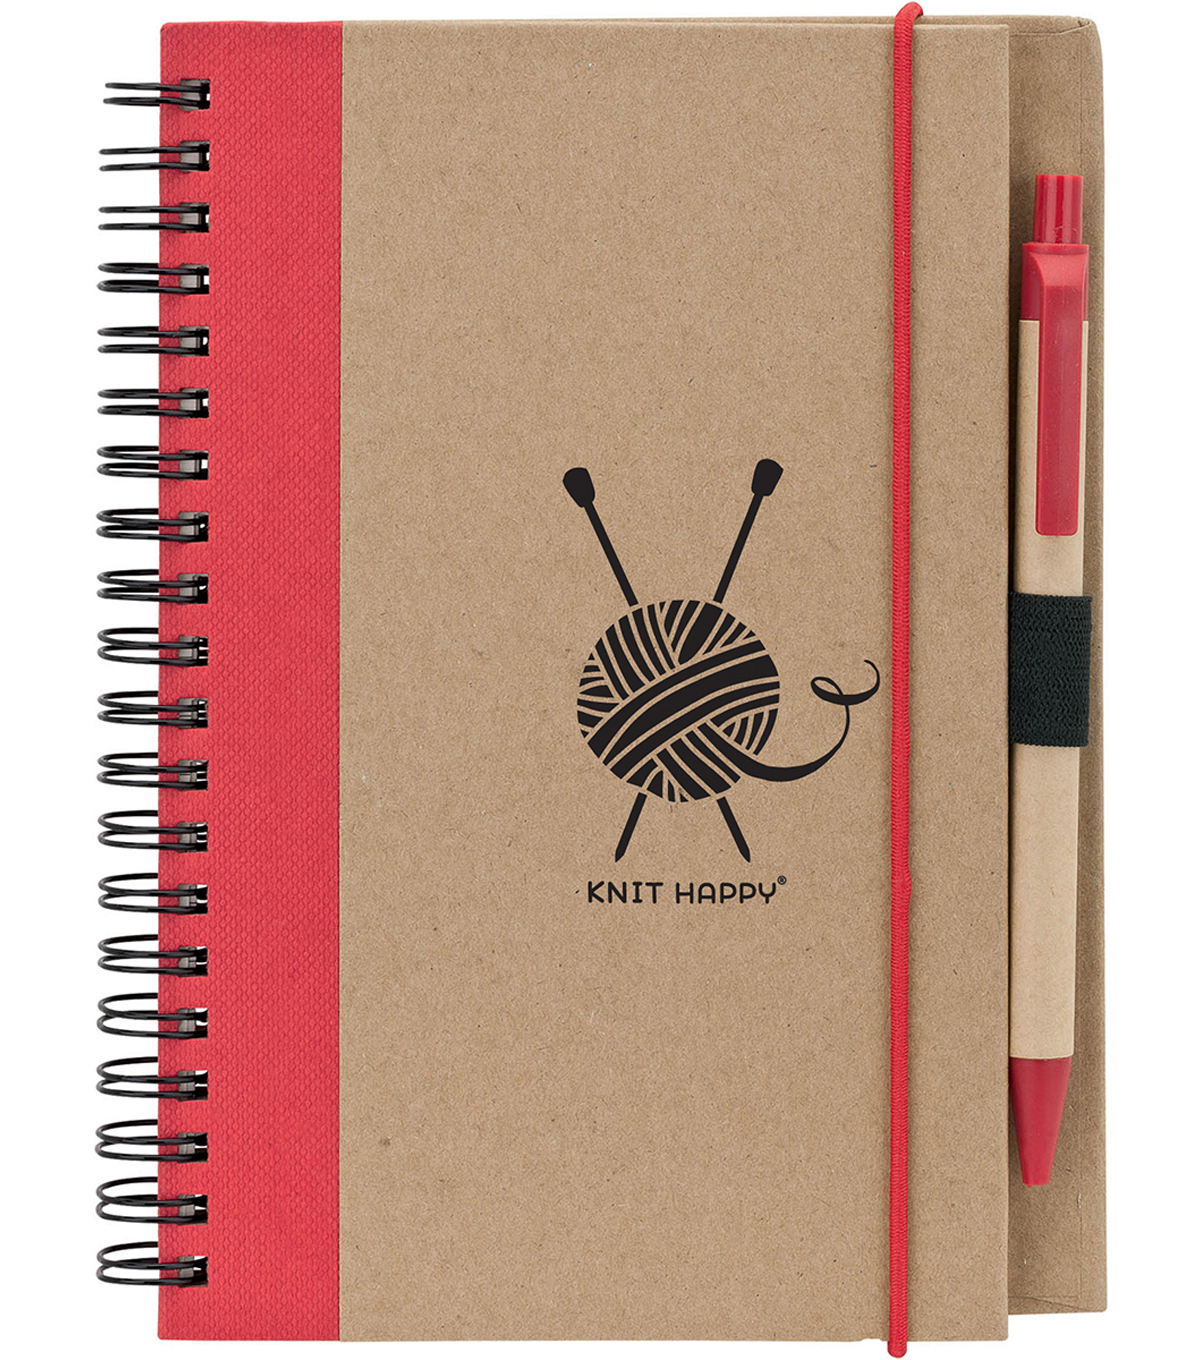 Knit Happy Eco Journal w/Pen-Red